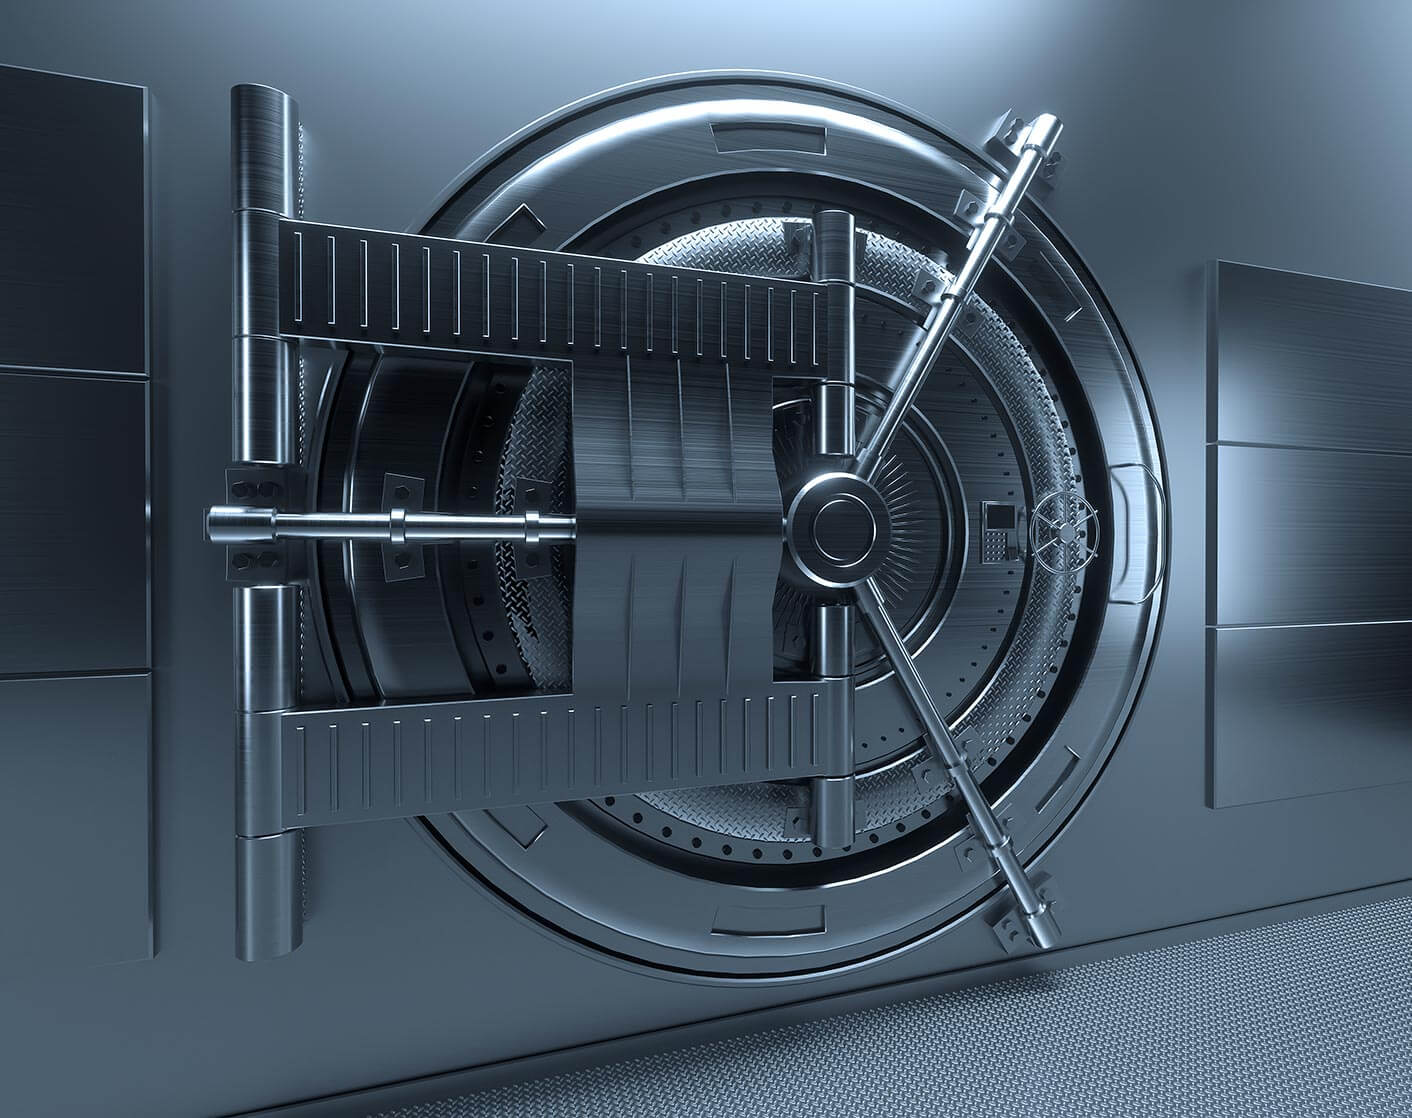 image of a bank vault door